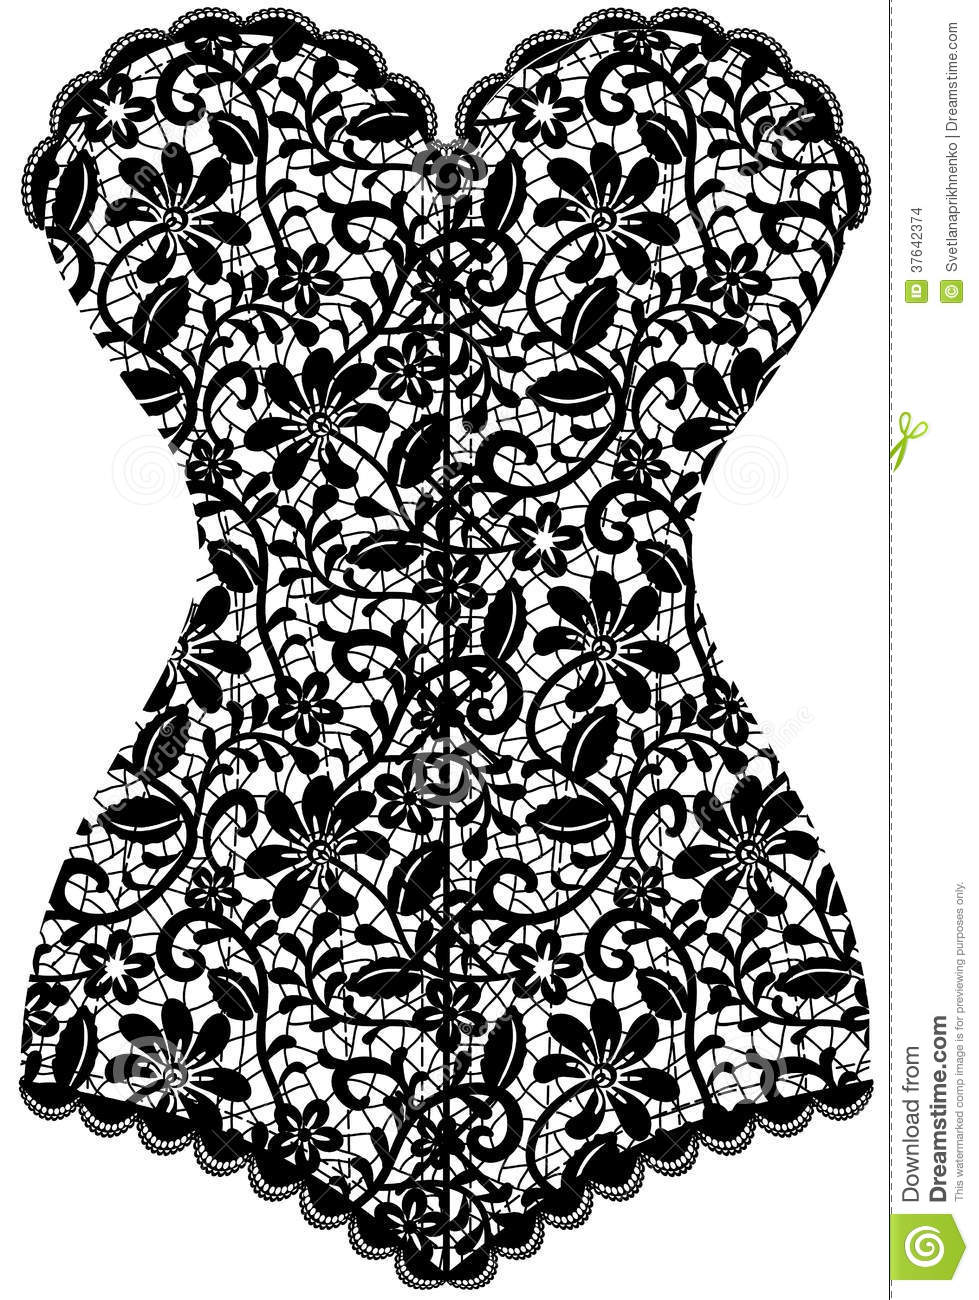 http://thumbs.dreamstime.com/z/vintage-corset-lace-black-isolated-white-37642374.jpg